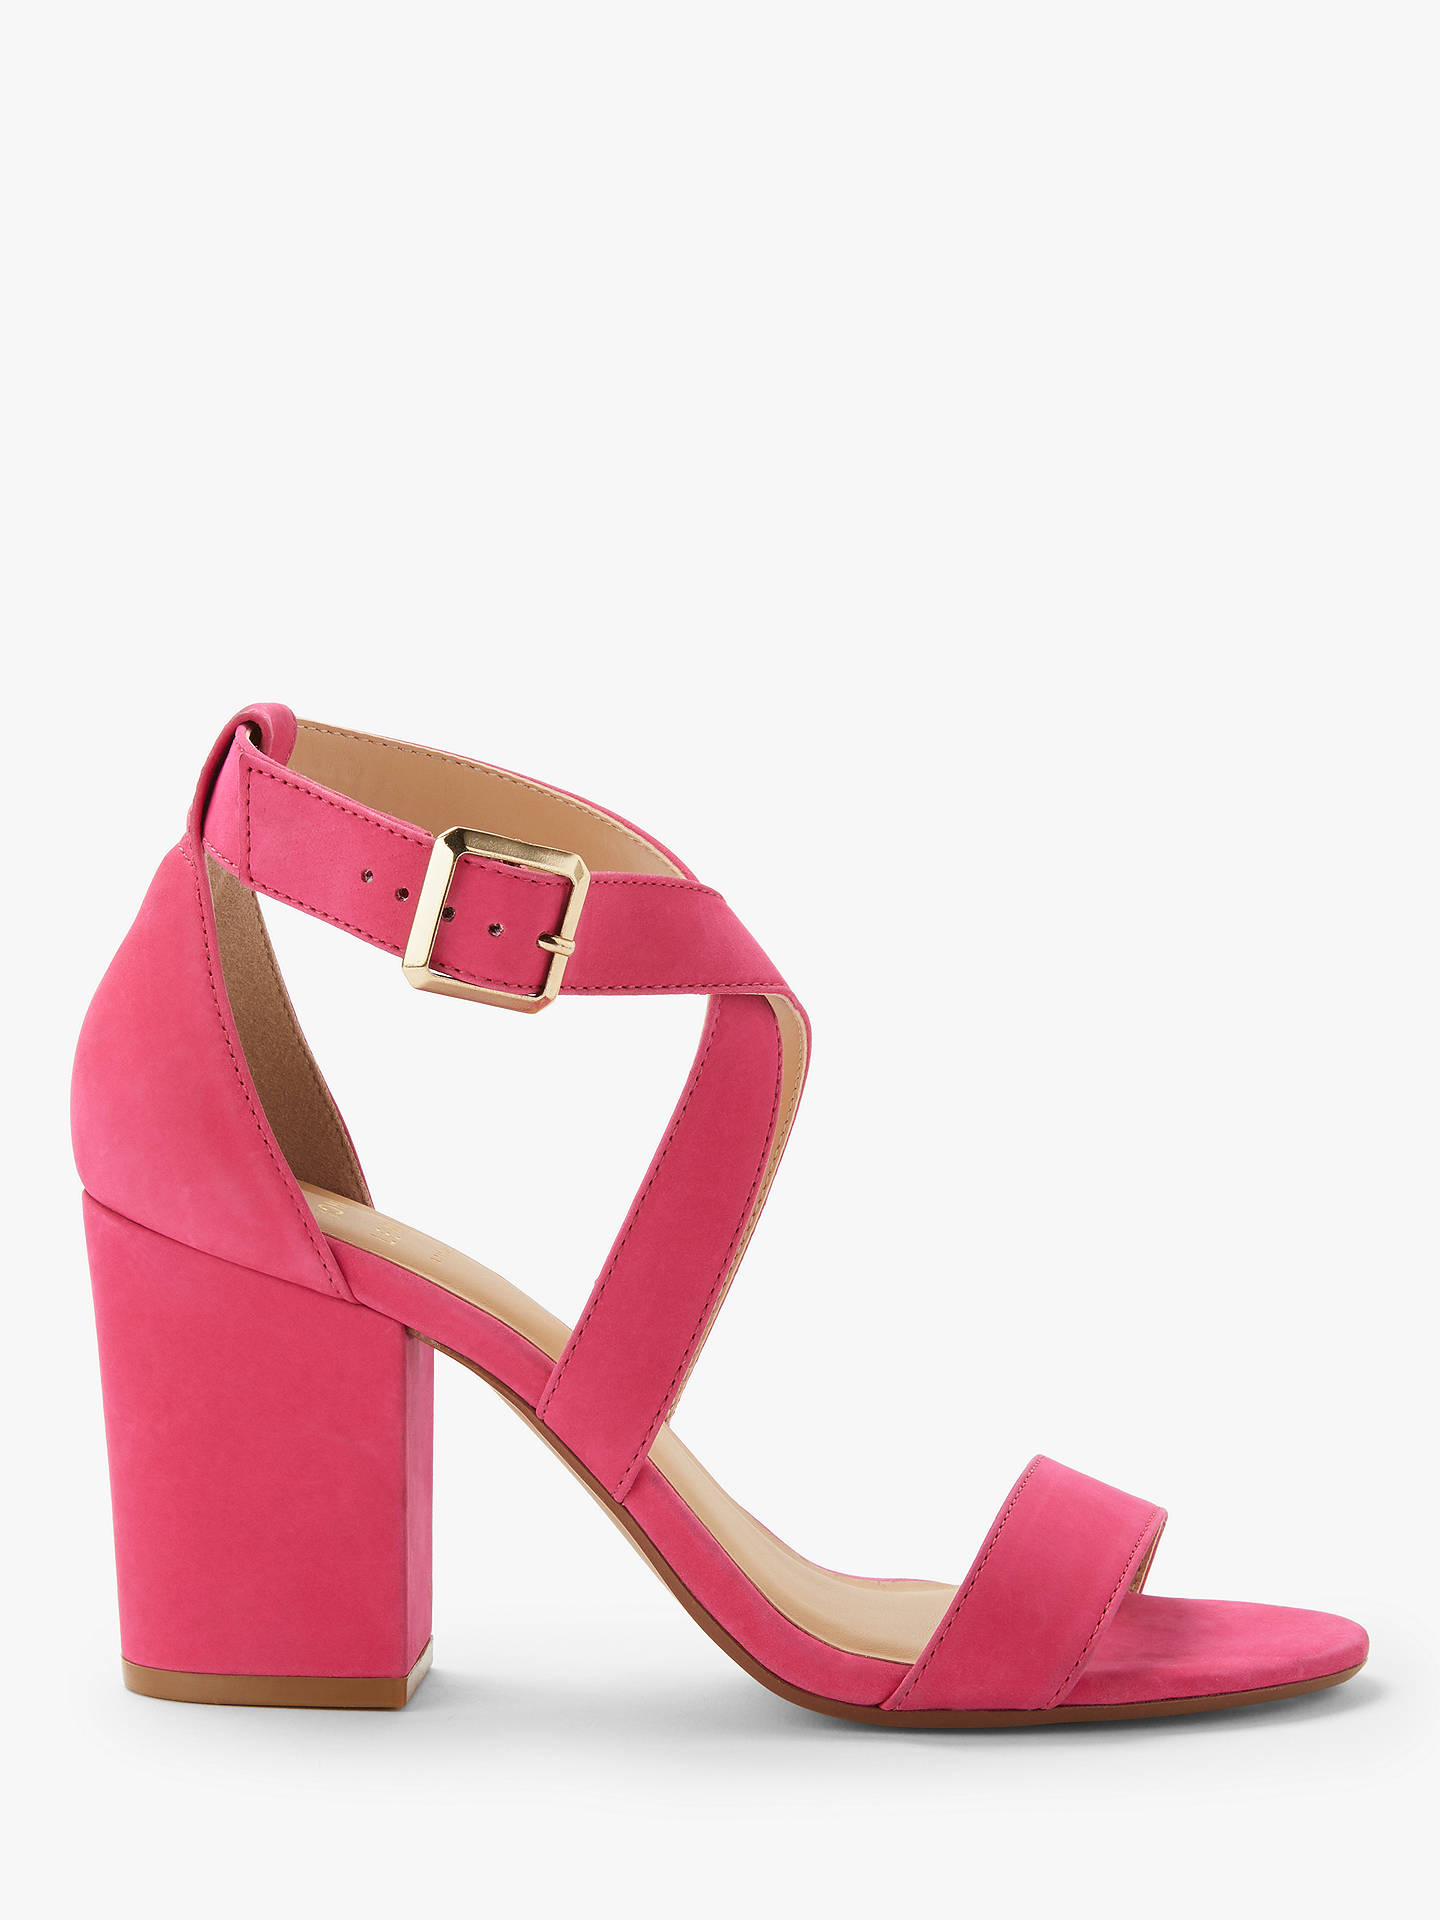 d8784073a37 John Lewis & Partners Demi Cross Strap Block Heel Sandals, Hot Pink ...